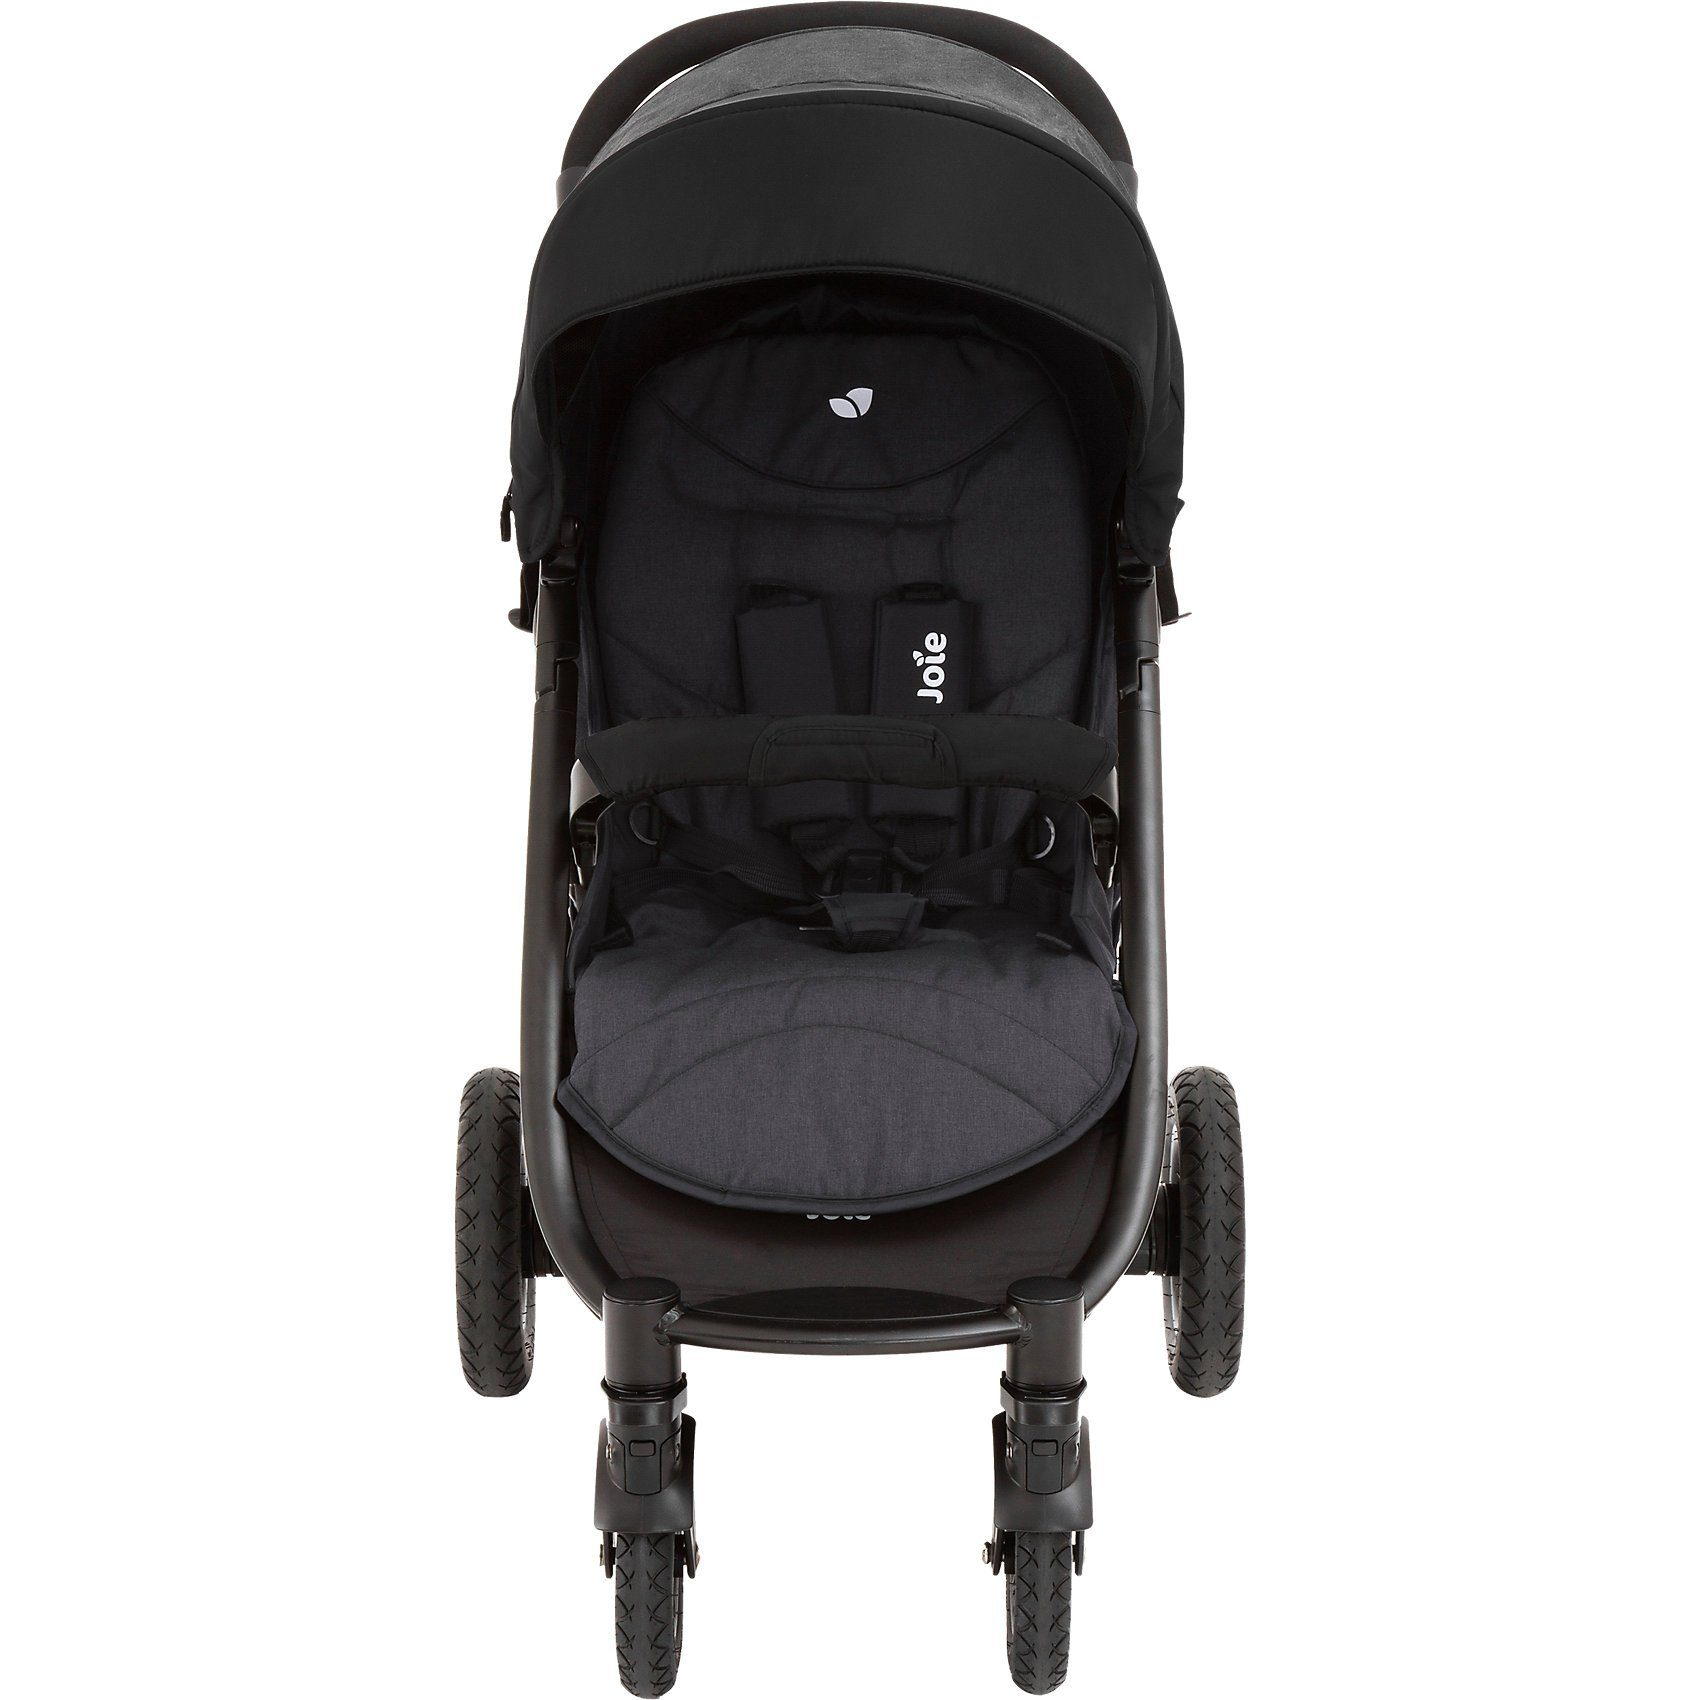 Joie Sportwagen Litetrax 4 Air, night sky